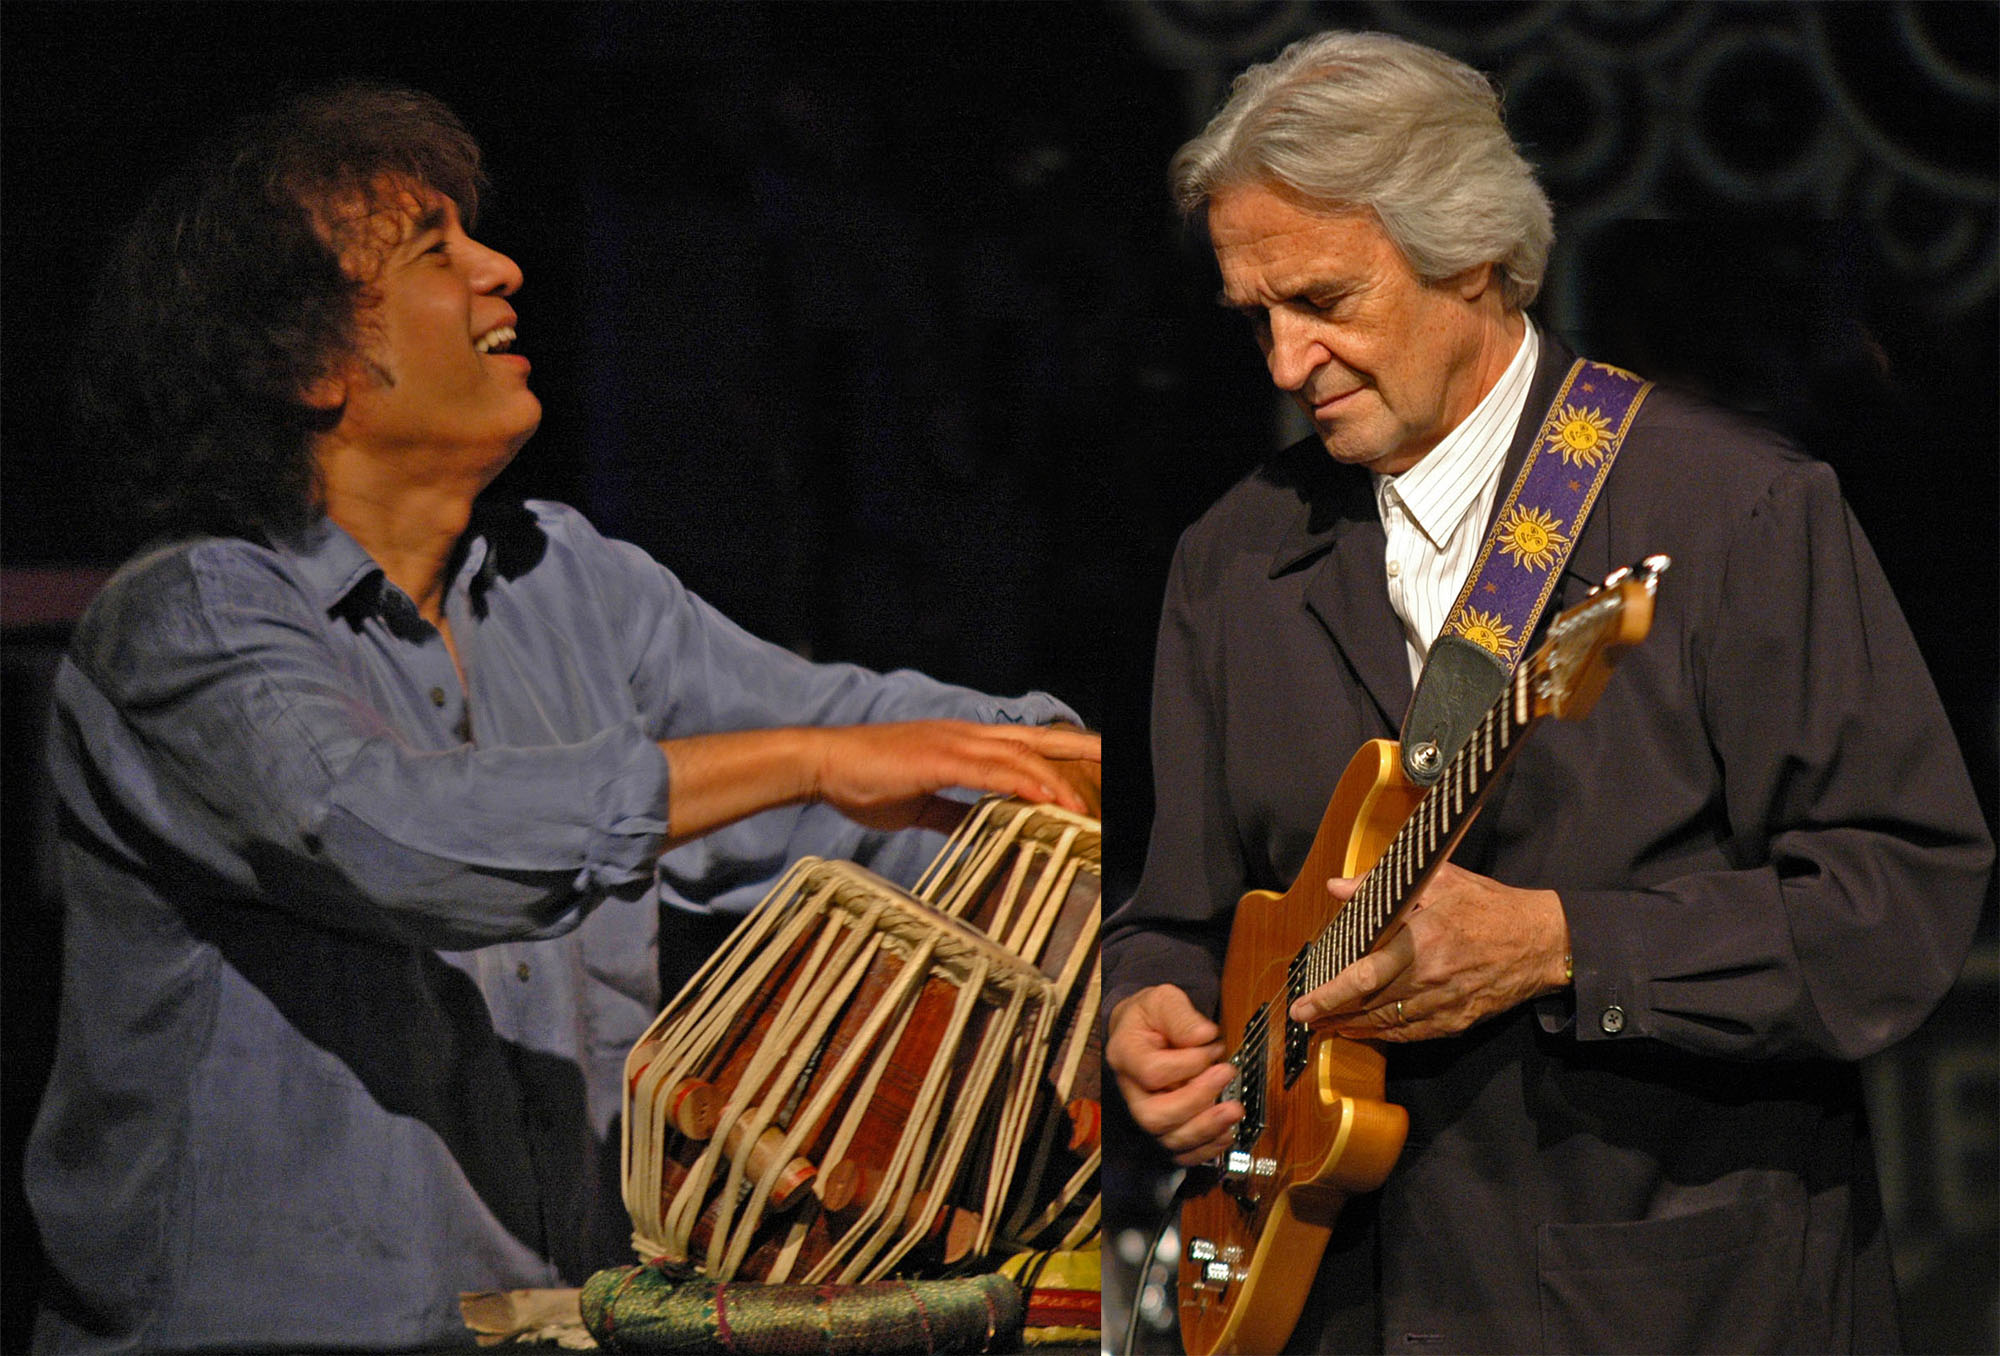 Zakir Hussain and John McLaughlin, Performing at the 2010 New Universe Music Festival